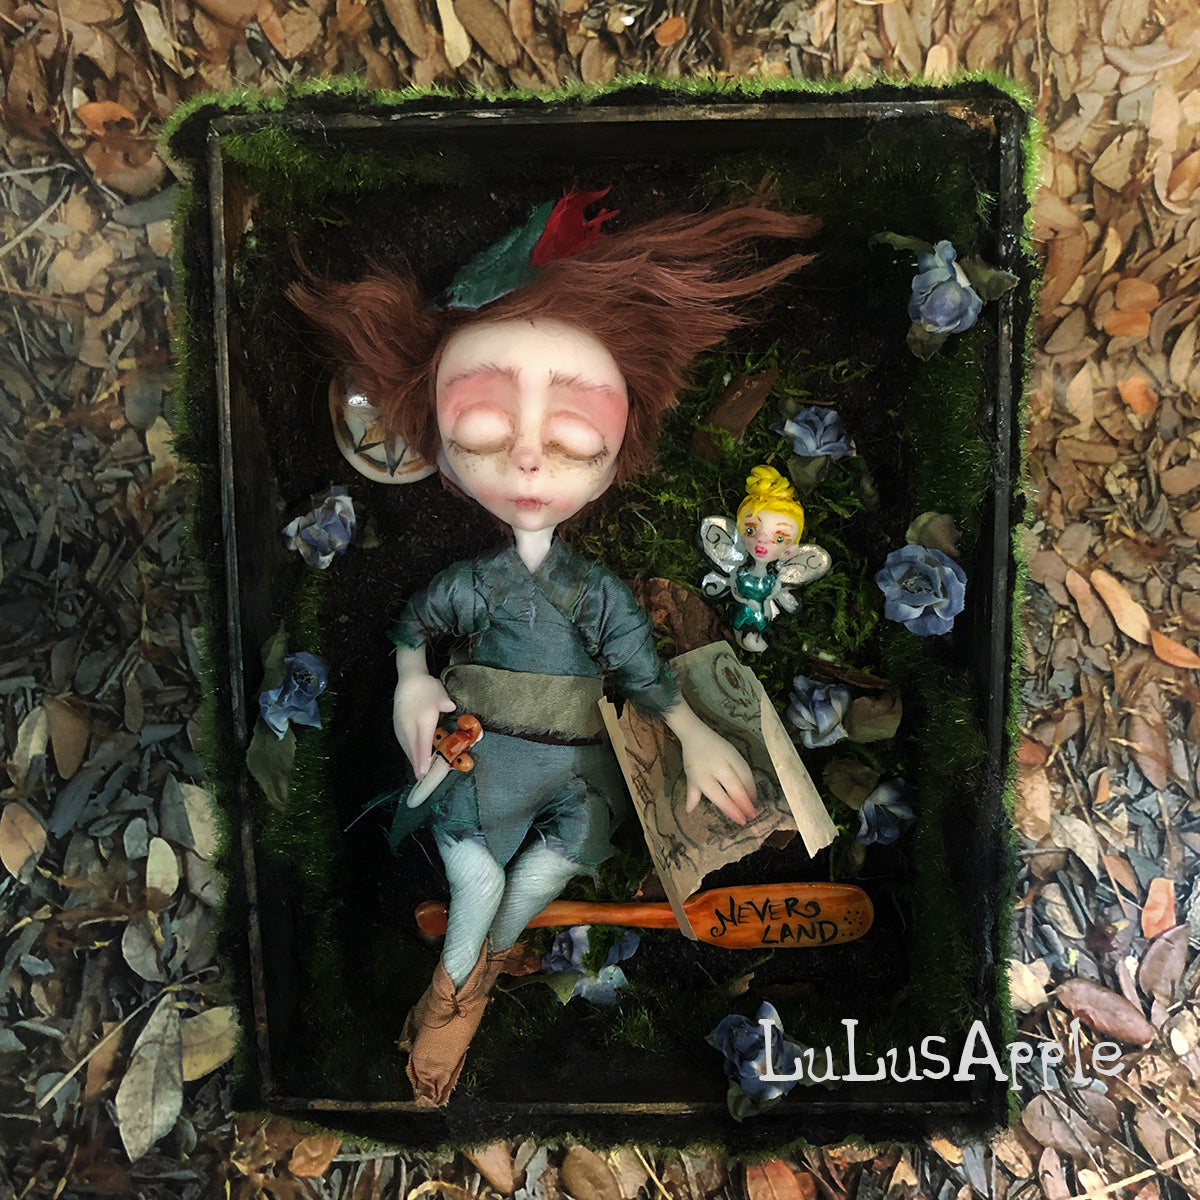 Peter and Tink sleeping kids OOAK Art Doll LuLusApple